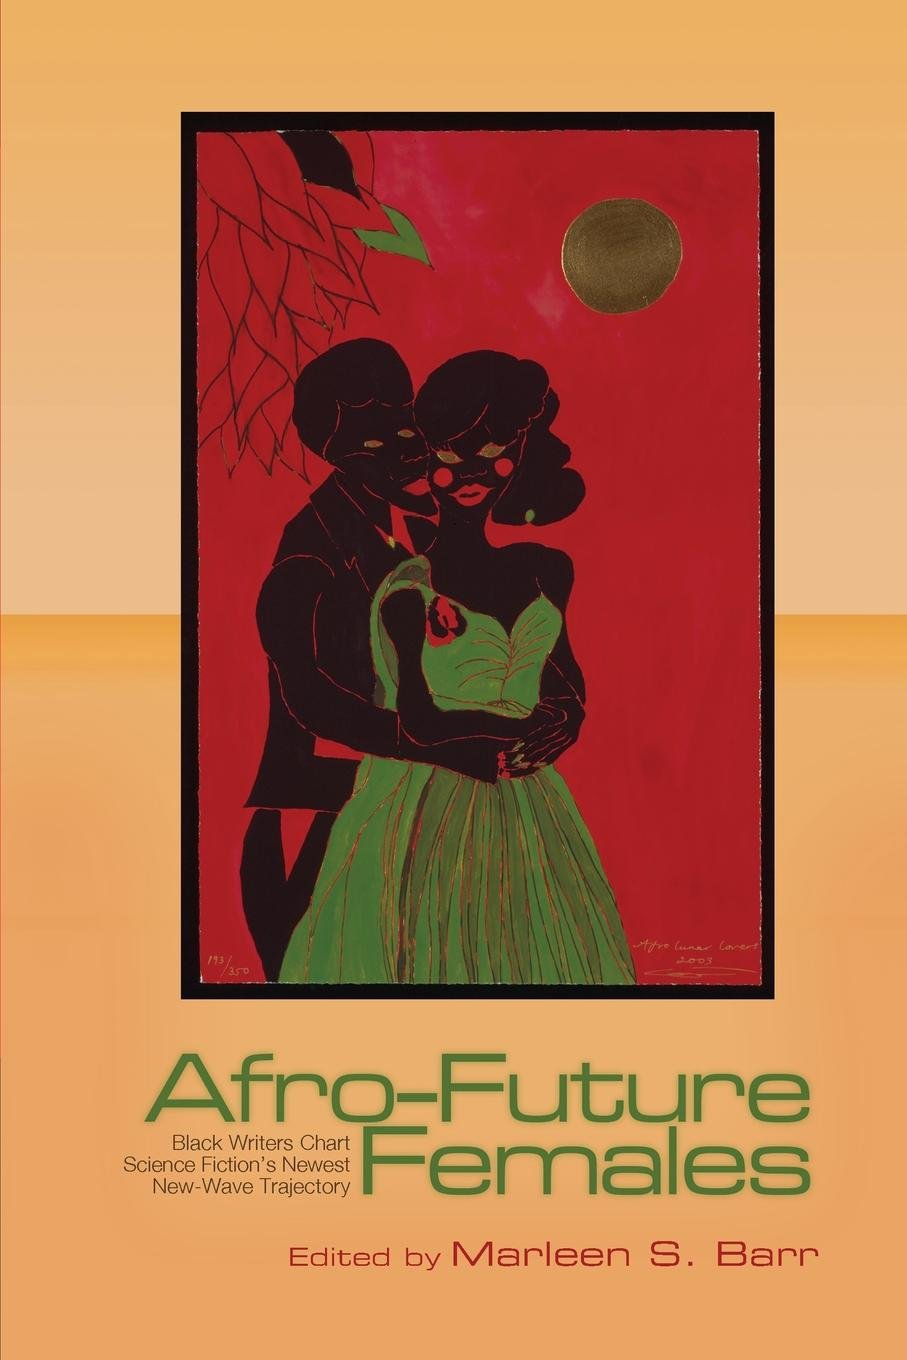 Amazon.com: Afro-Future Females: Black Writers Chart Science Fiction's  Newest New-Wave Trajectory (9780814255056): Marlene S. Barr: Books